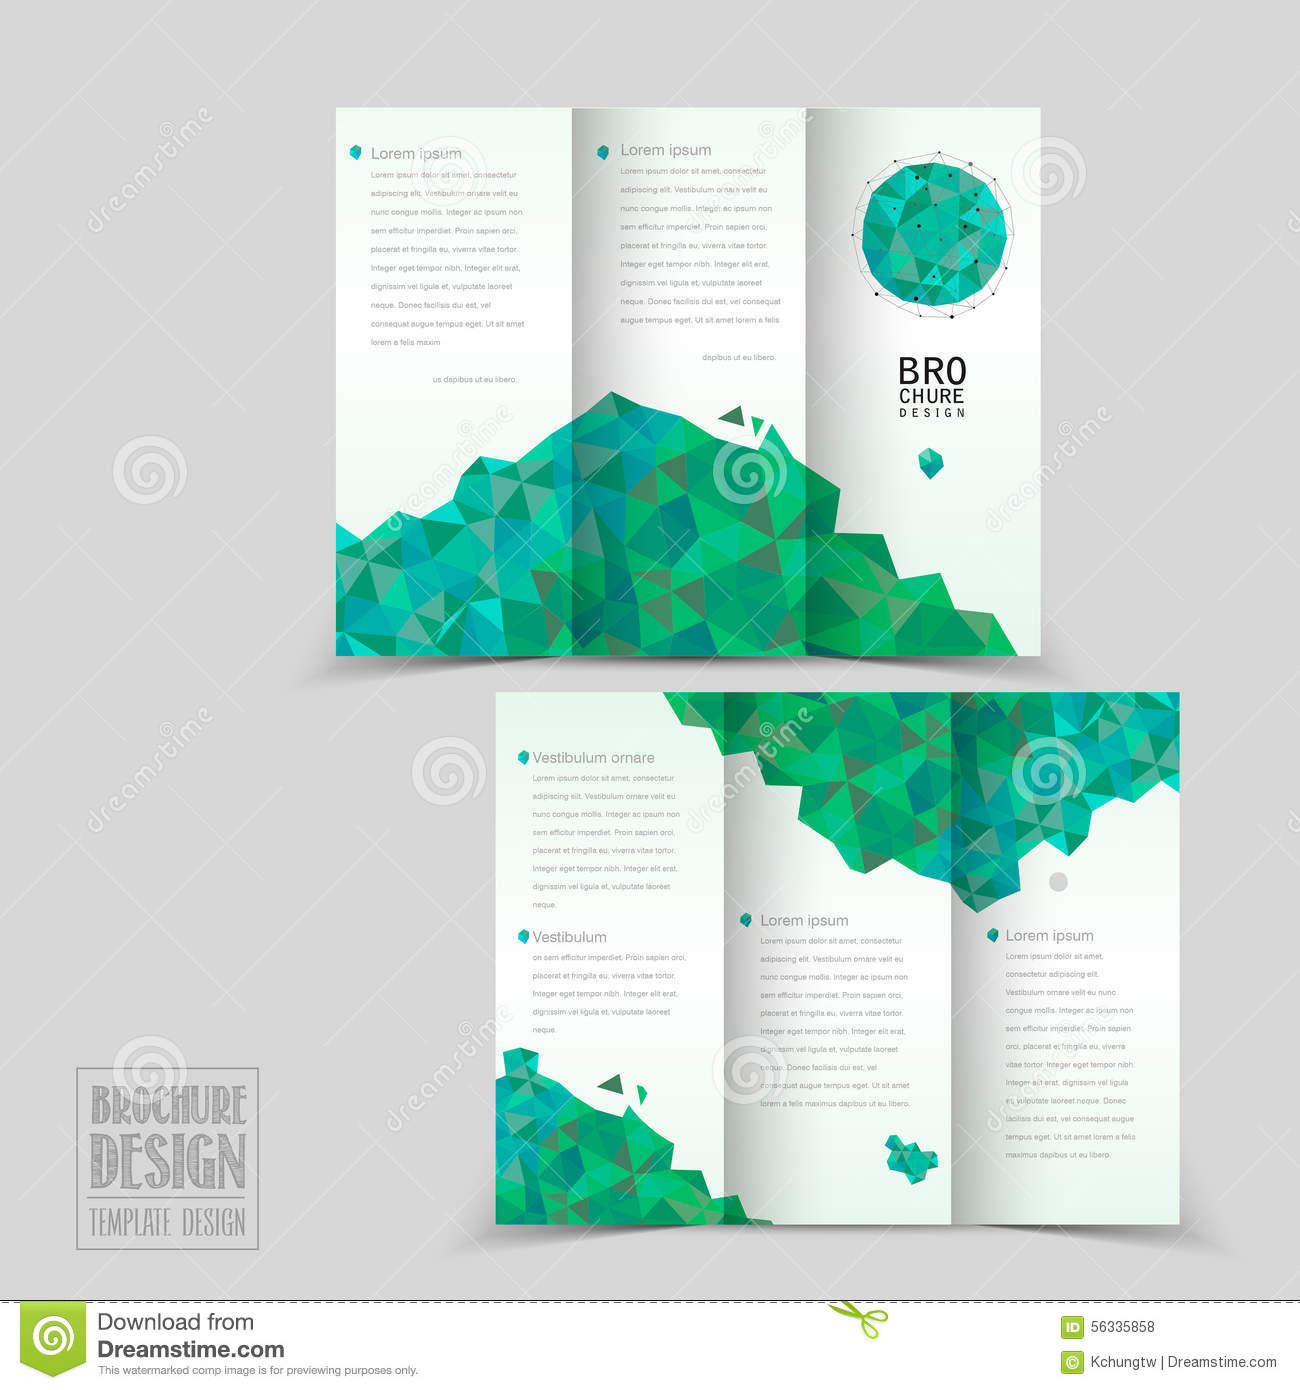 Simplicity tri fold brochure template design stock vector for Free template brochure design